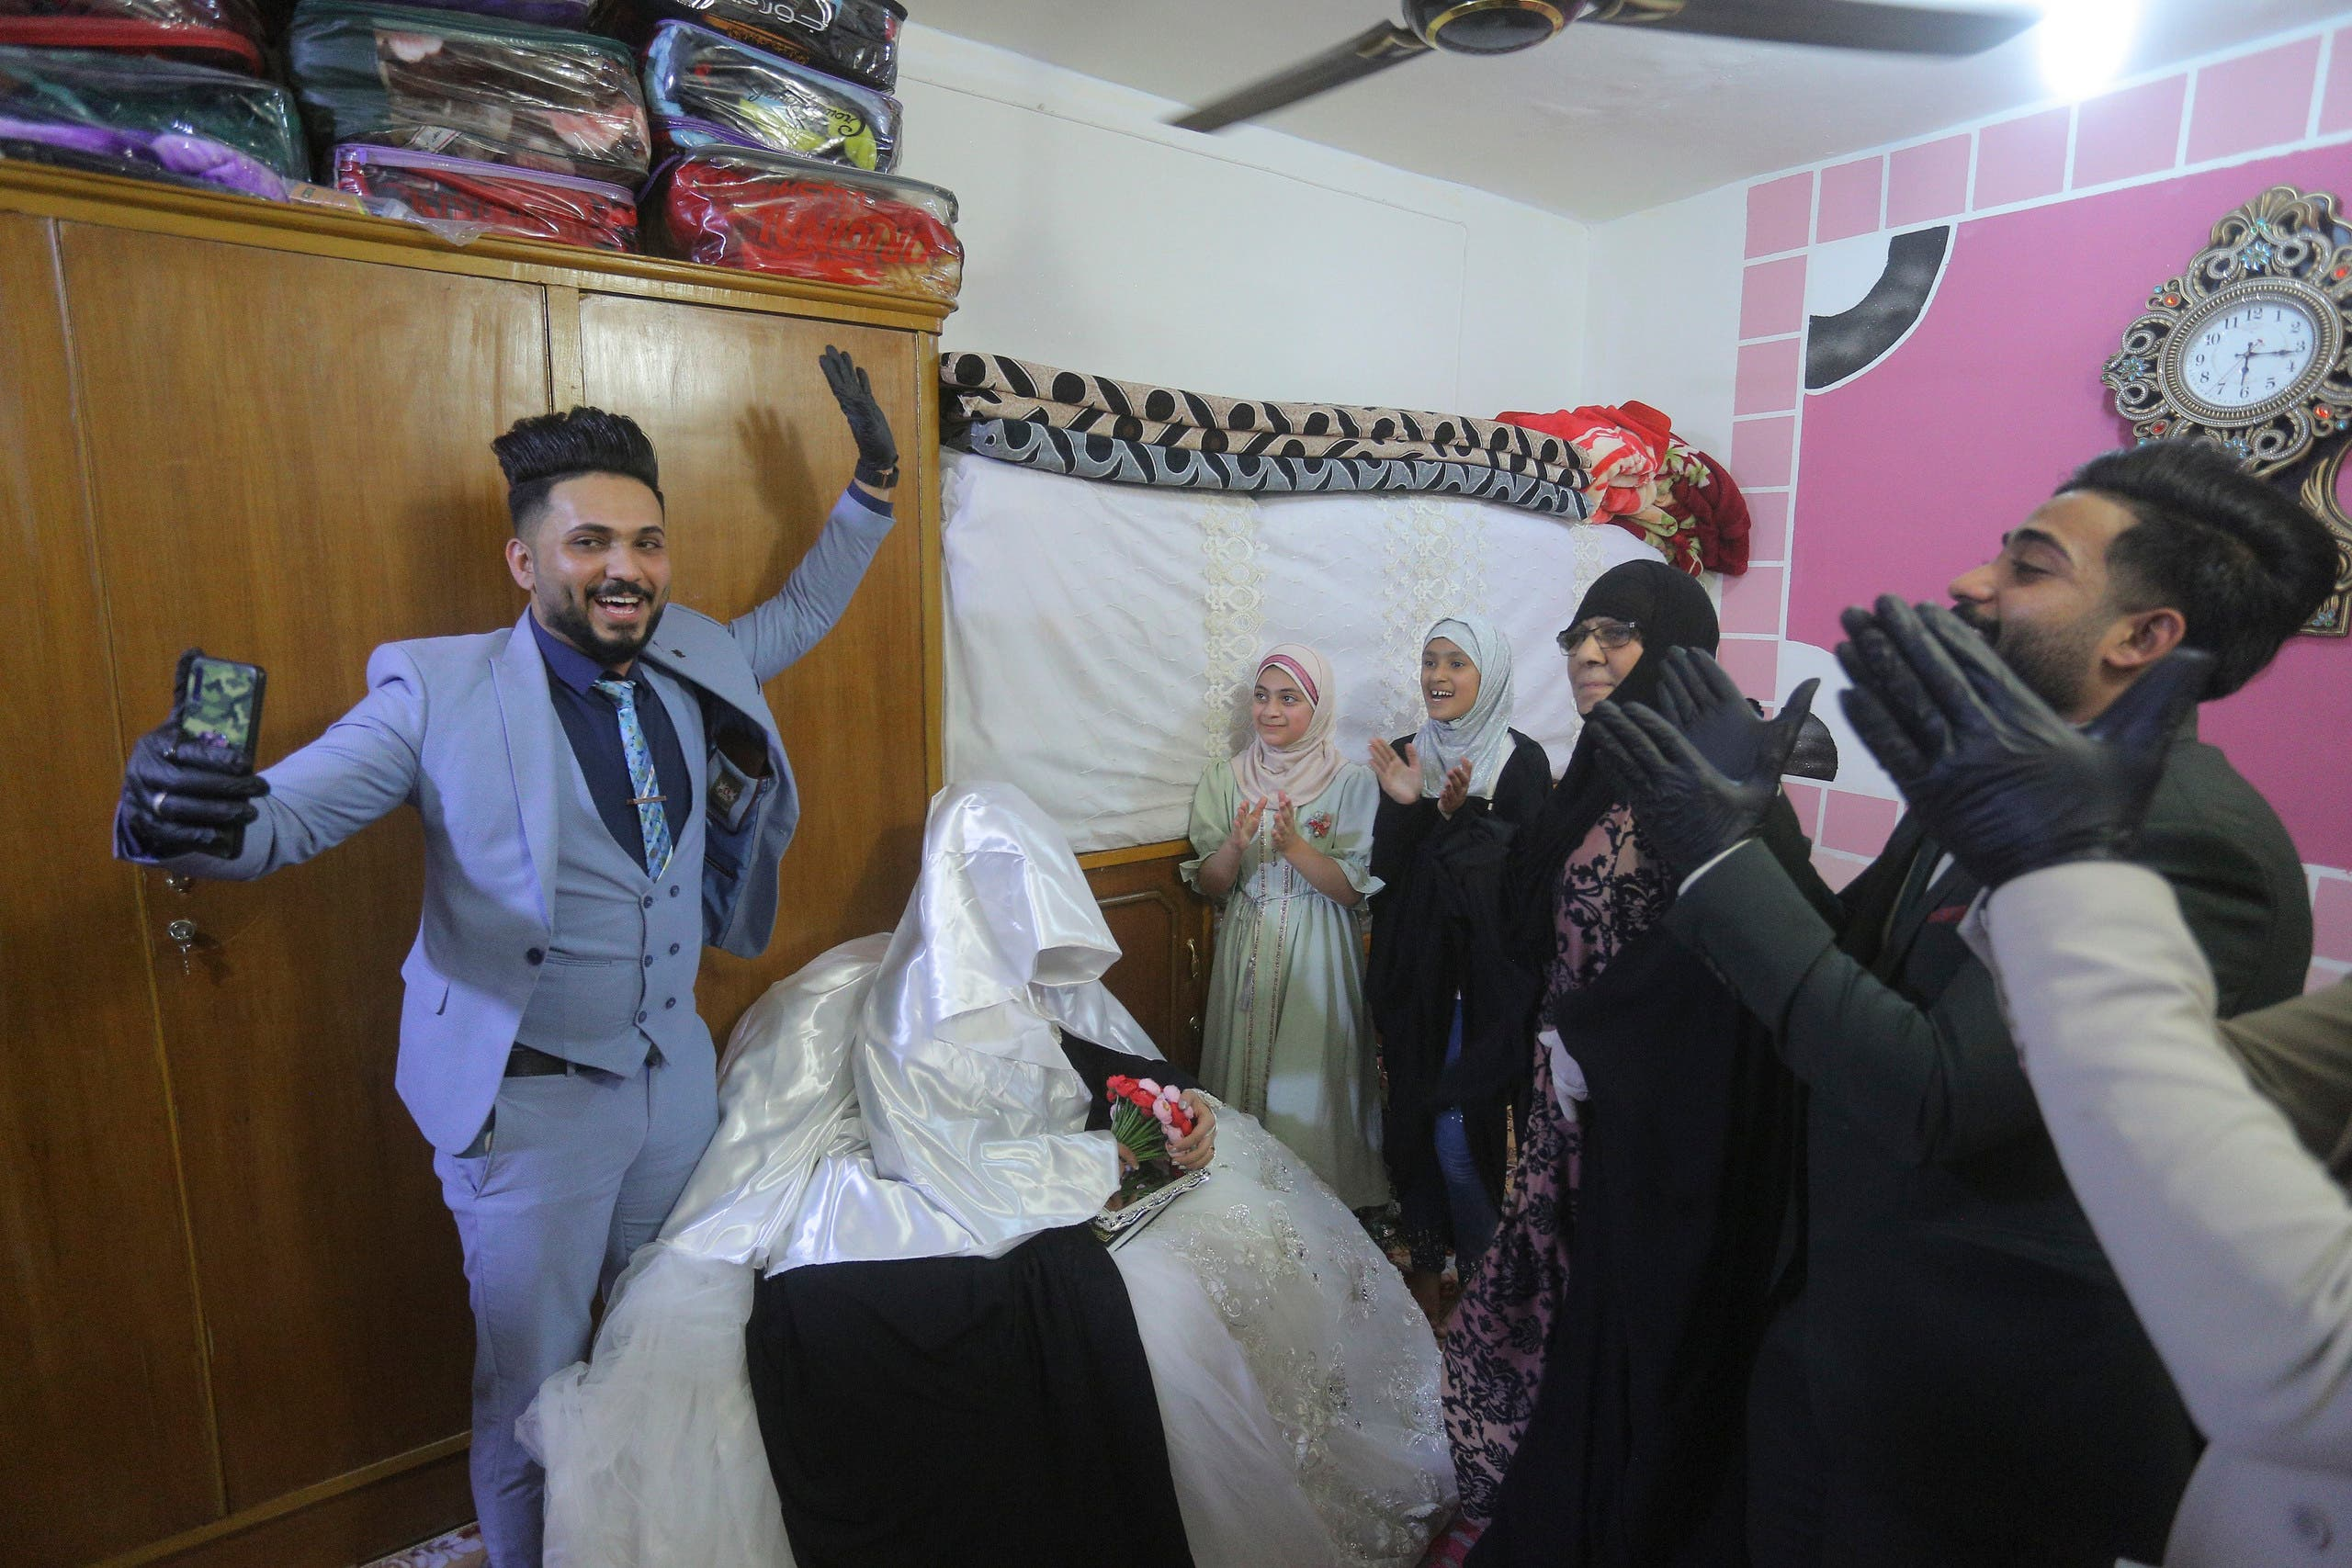 Ahmed Khaled al-Kaabi and his bride Ruqaya Rahim celebrate their wedding in Najaf, Iraq, on Thursday, April 9, 2020. (AP)